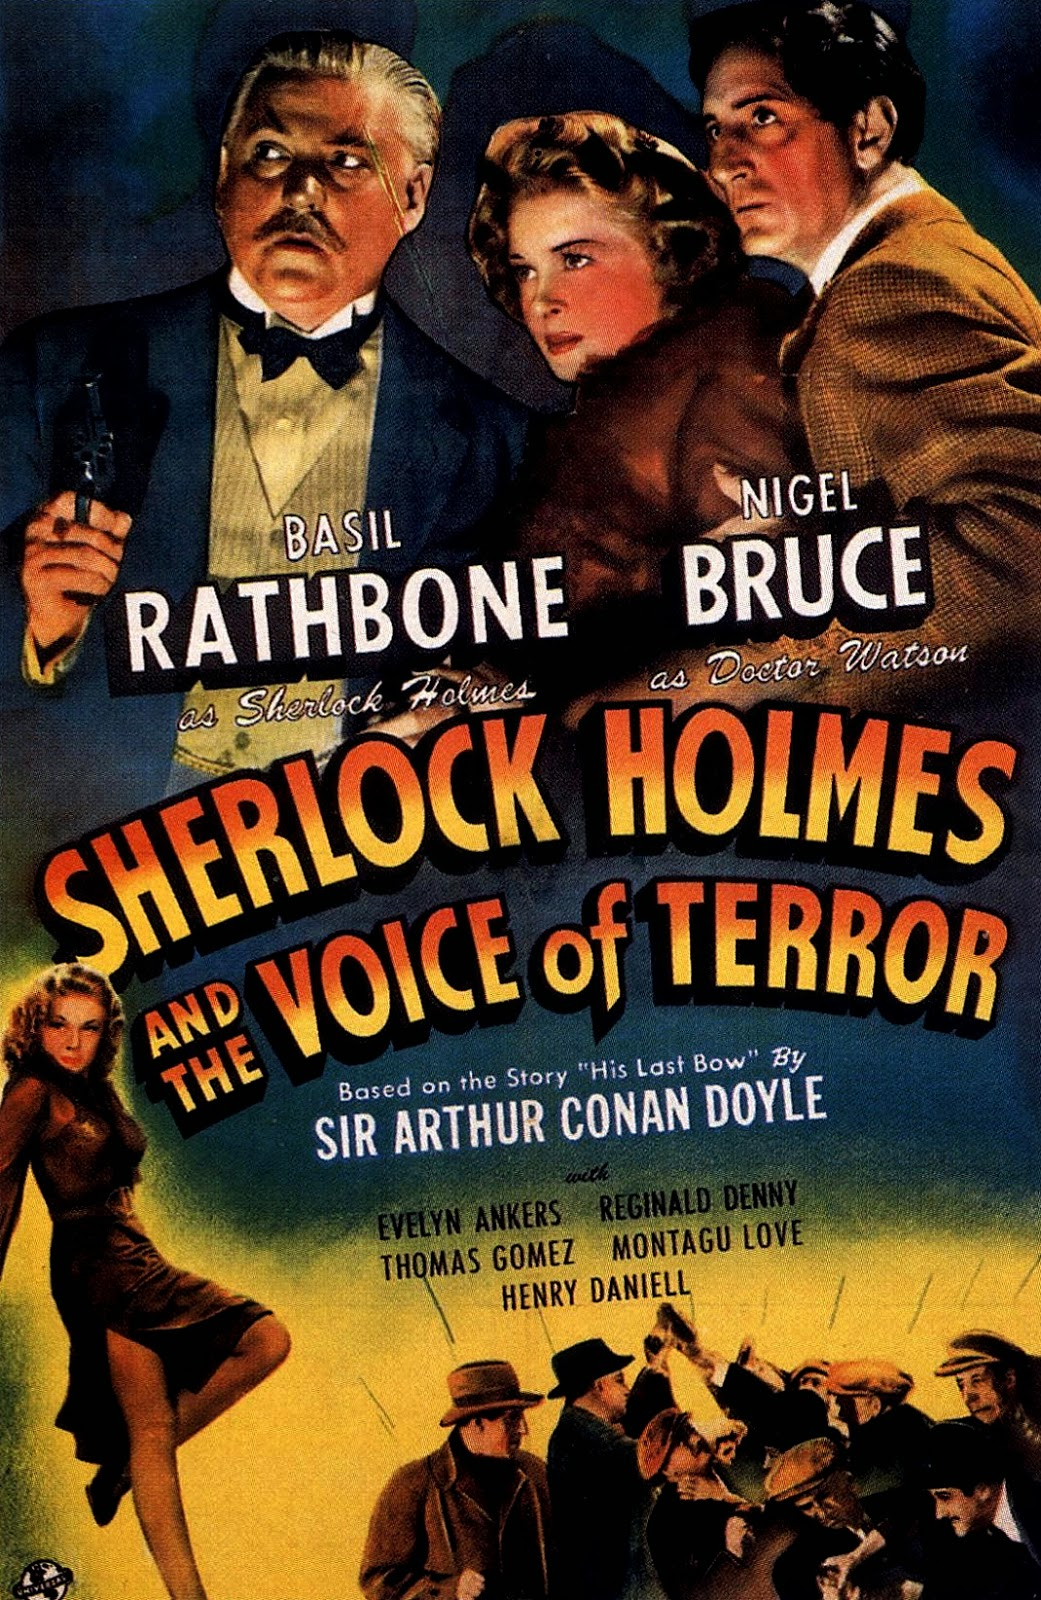 Affiche du film Sherlock Holmes and the voice of terror